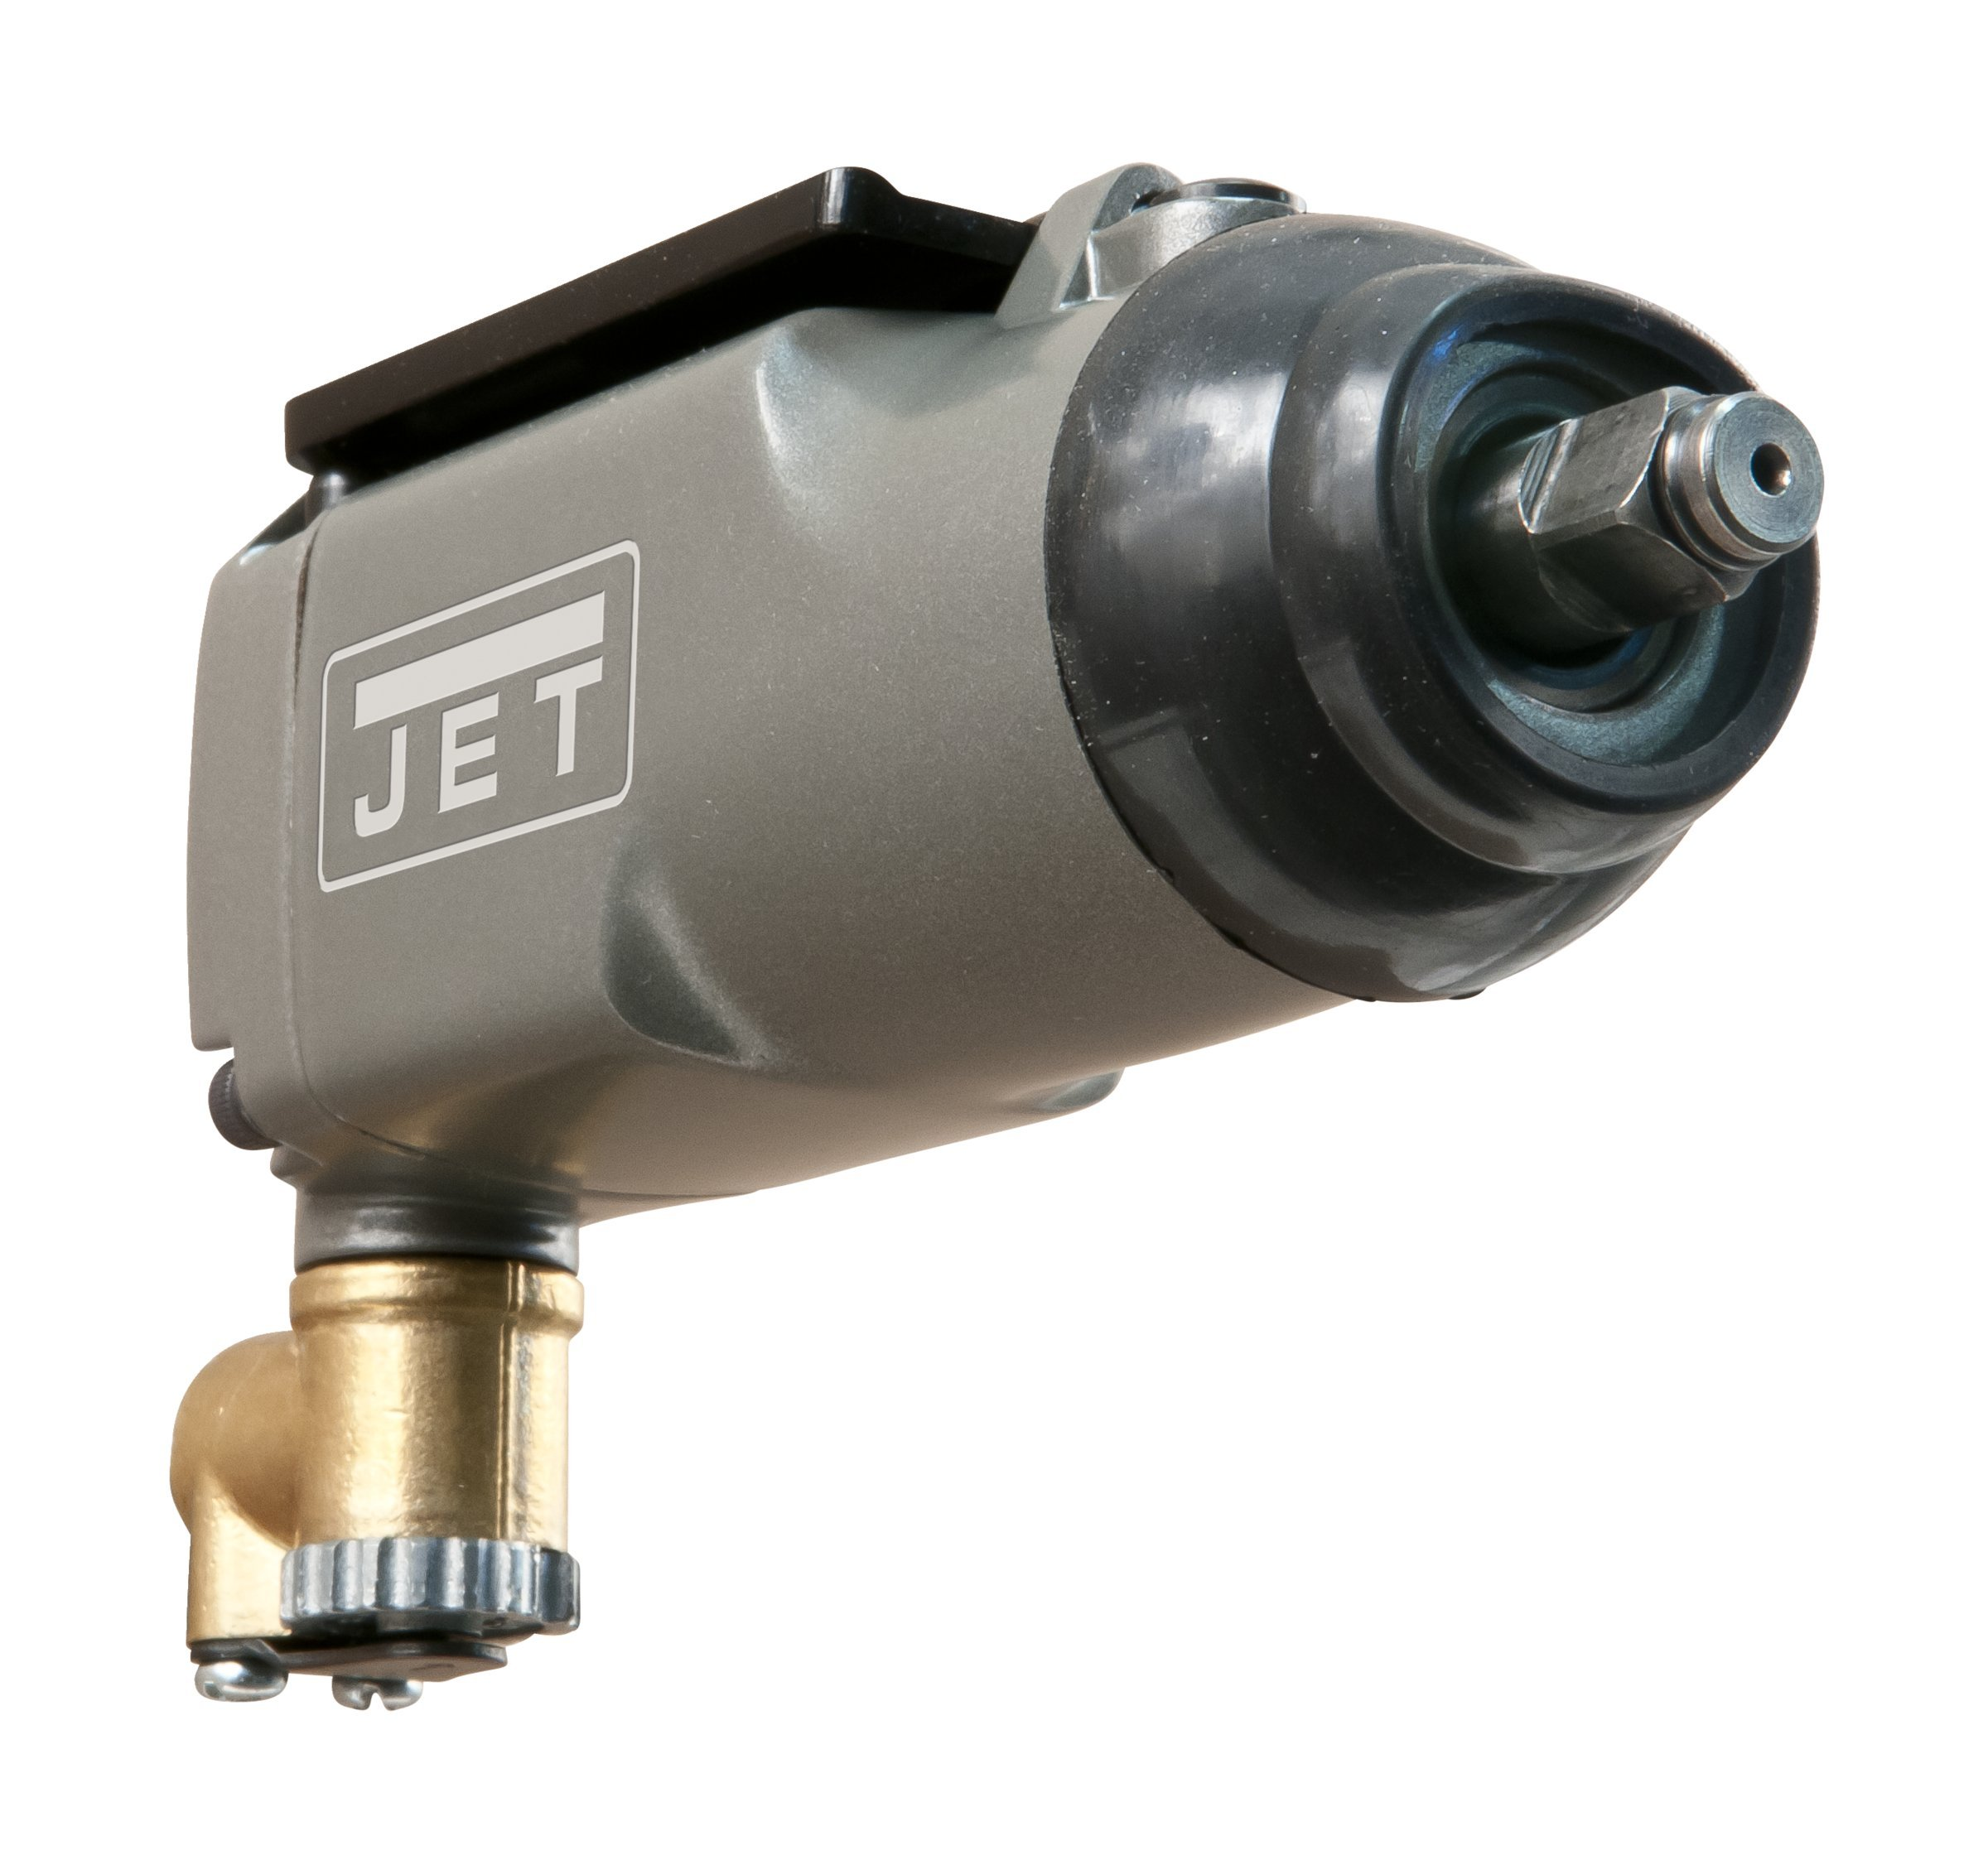 JET JAT-100 Pneumatic R6 Butterfly Impact Wrench, 3/8''